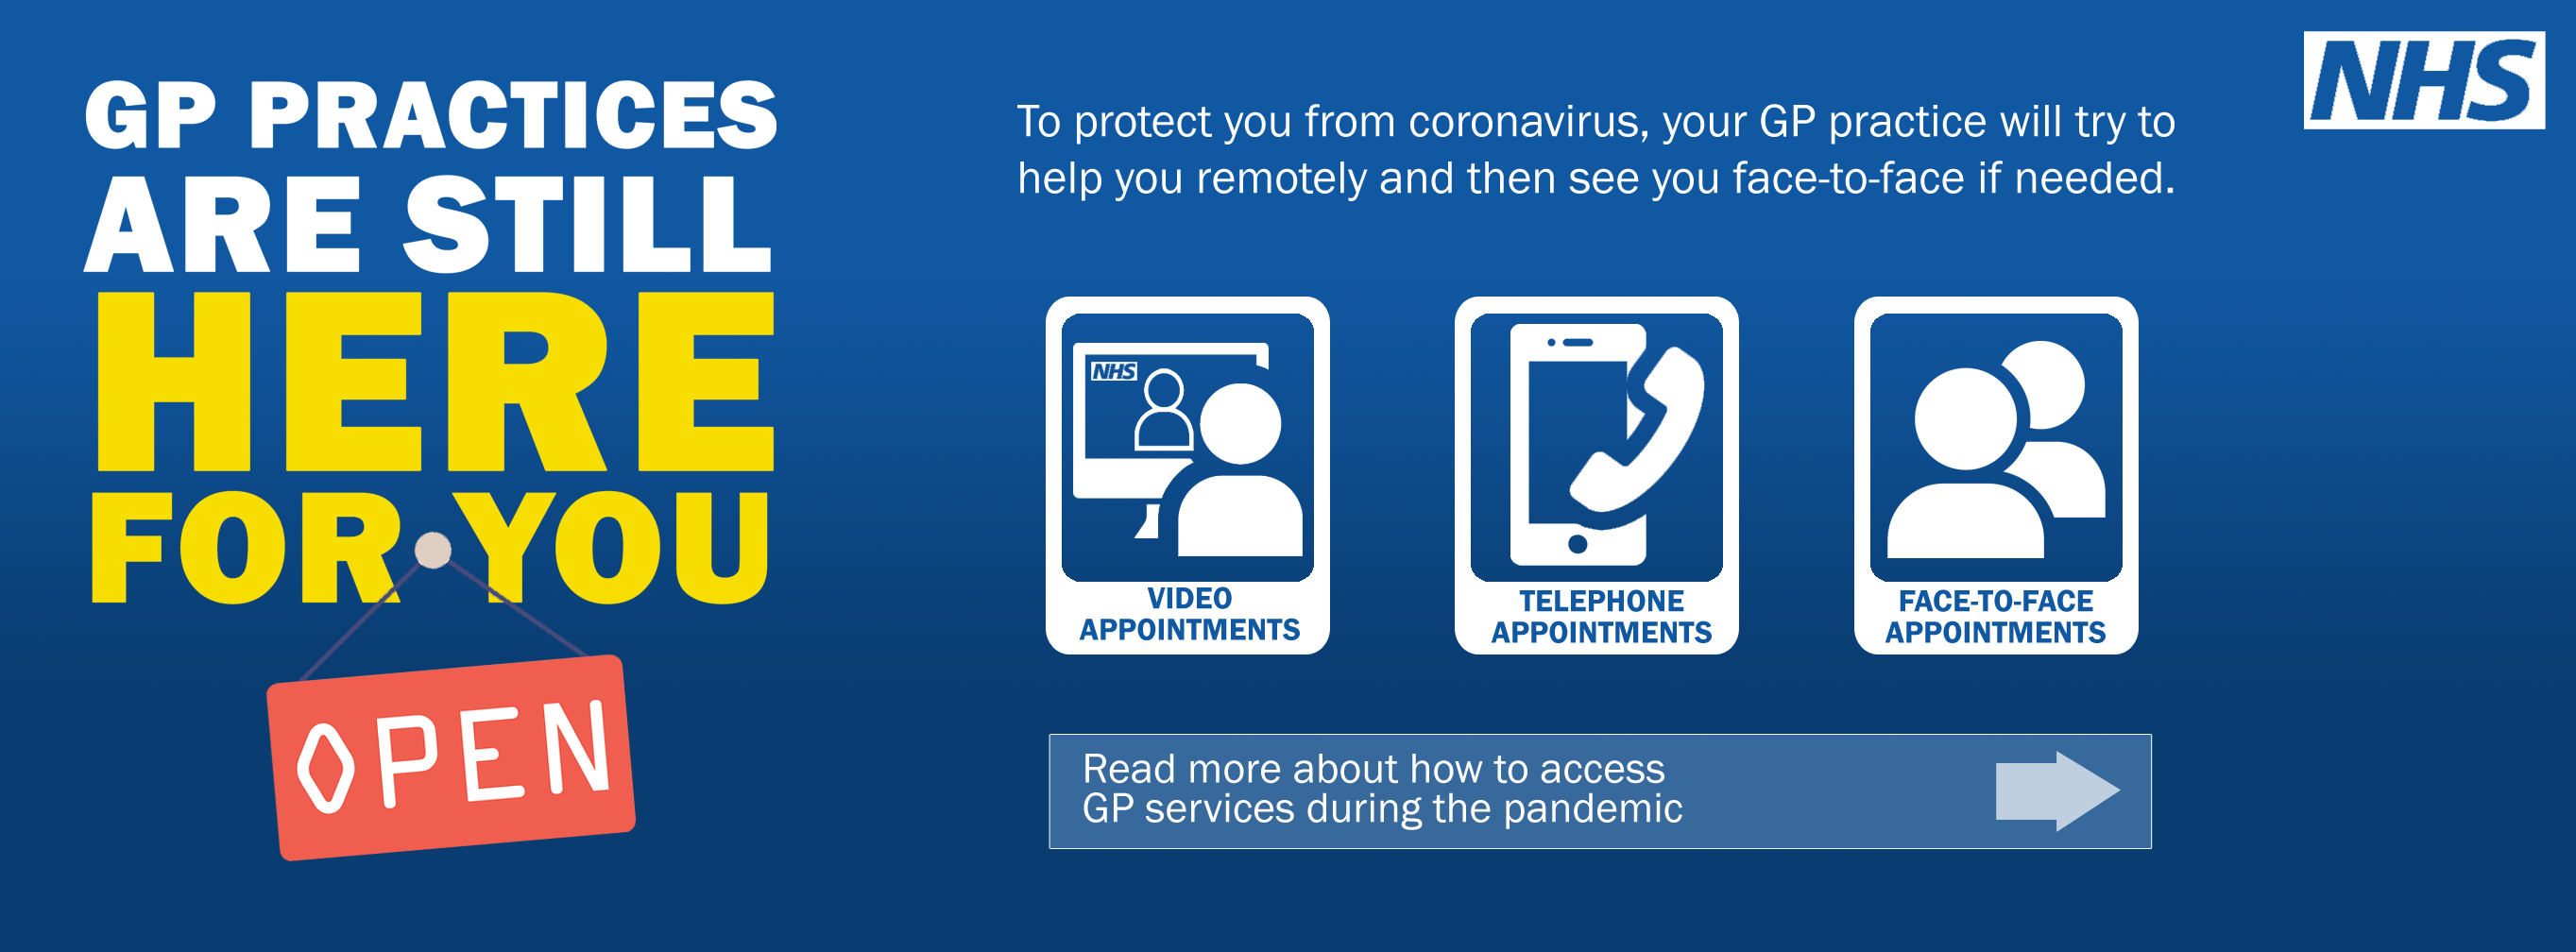 GP practices are still here for you. To protect you from coronavirus, your GP practice will try to help you remotely and then see you face-to-face if needed.